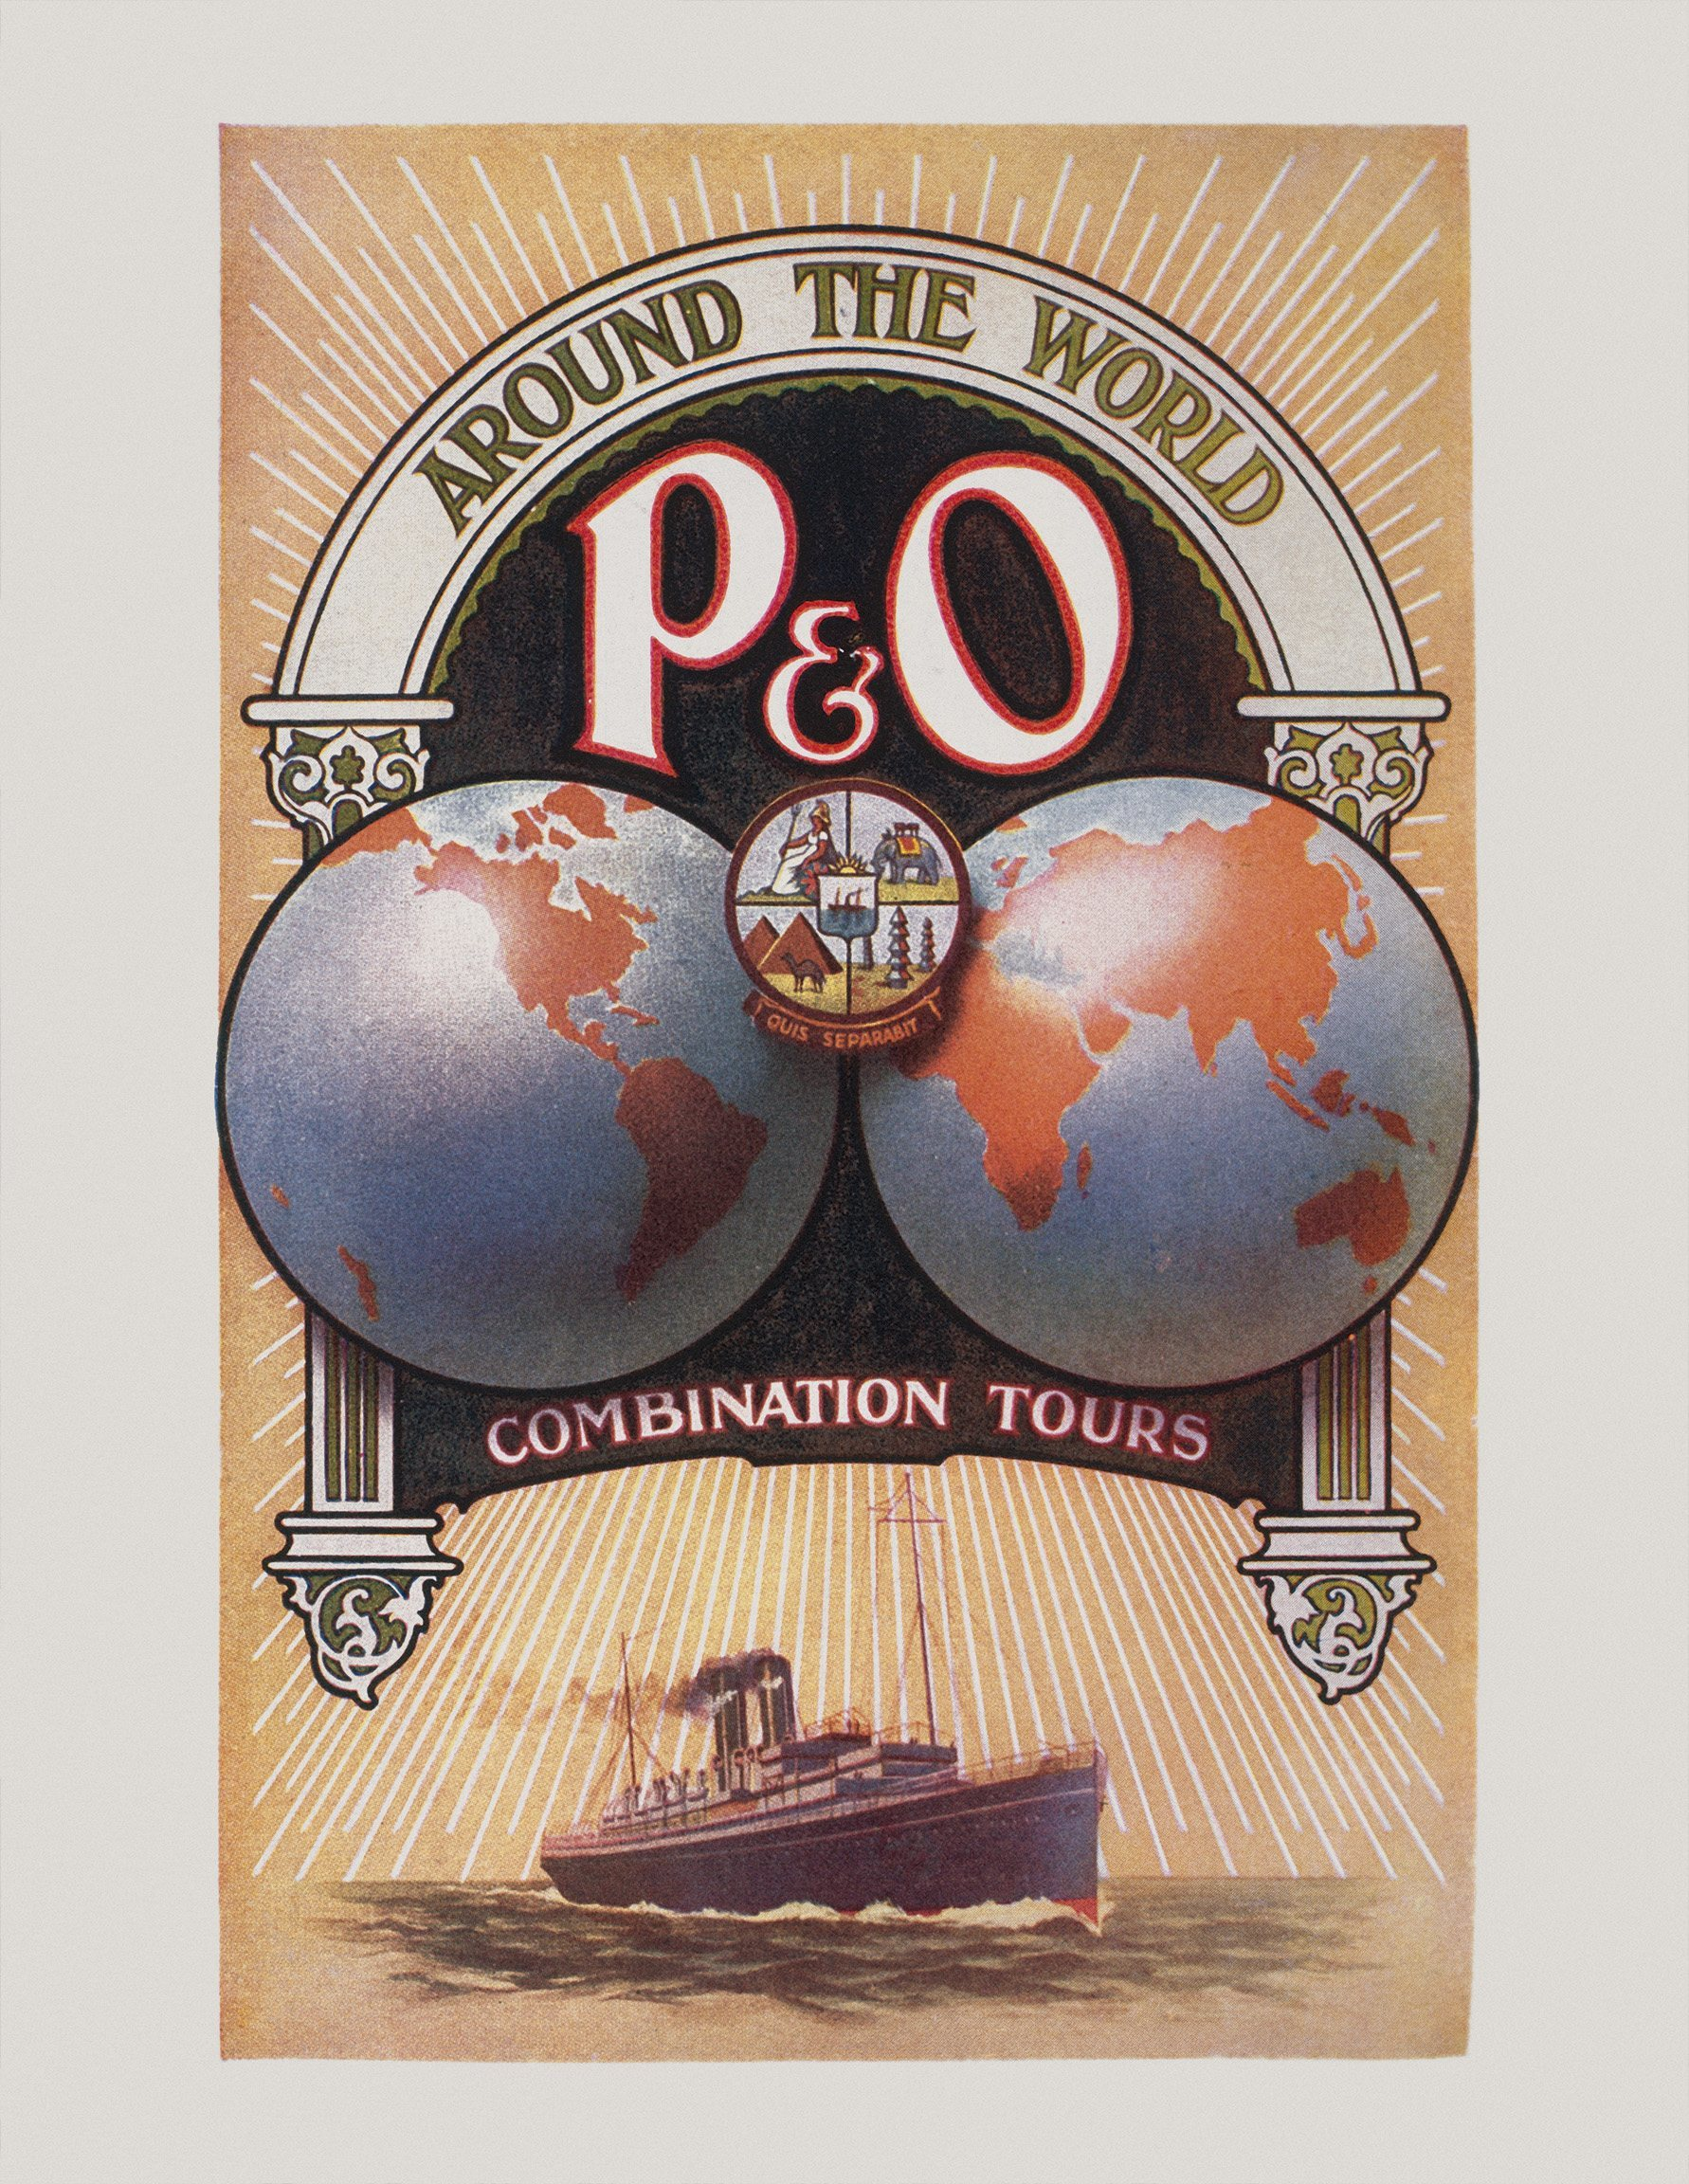 Original brochure for P&O's sailing schedules and 'Combination Tours', issued in 1914. jpg